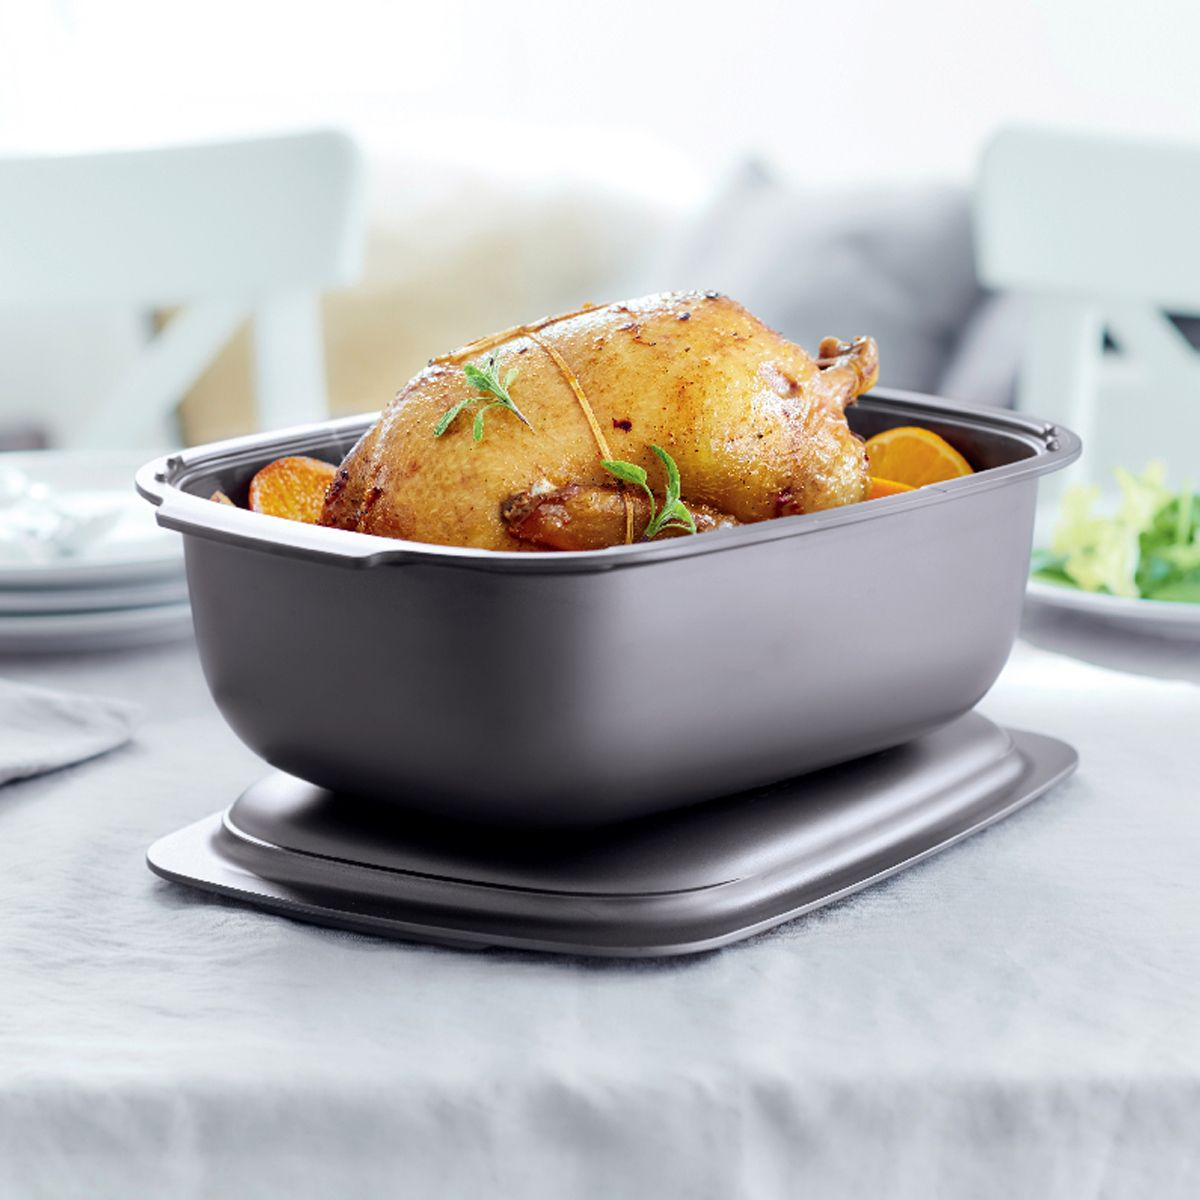 Dinner is served! The UltraPro Roasting Pan brings out the chef in everyone. Enjoy delicious entrees, side dishes, desserts and more in this all-in-one ovenware for the oven, microwave, fridge and freezer.